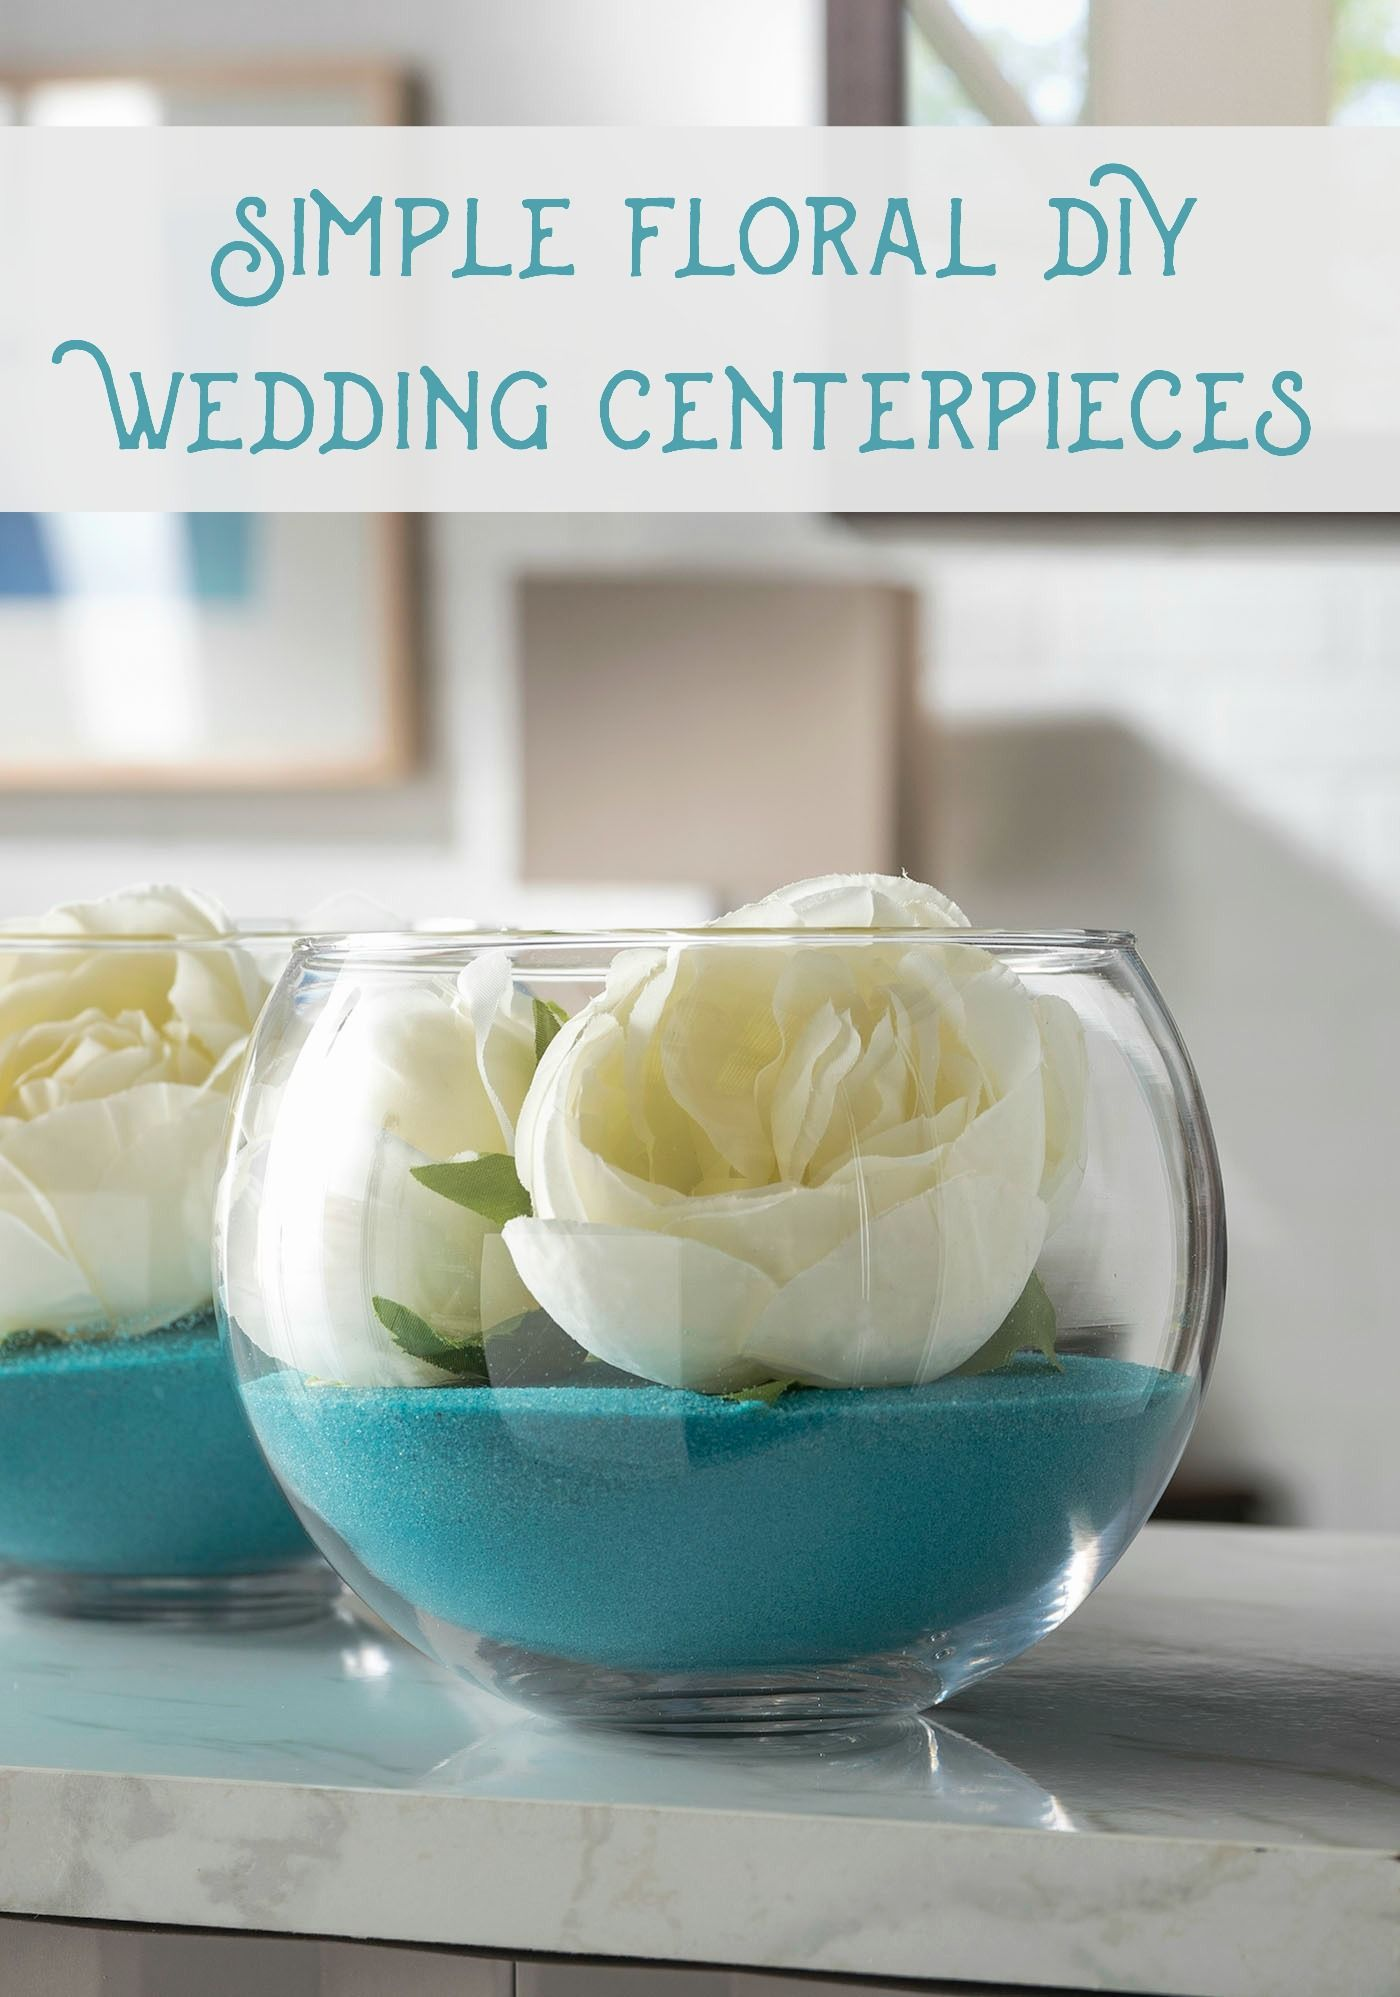 Learn How To Make These Simple And Beautiful DIY Wedding Centerpieces In A Matter Of Minutes